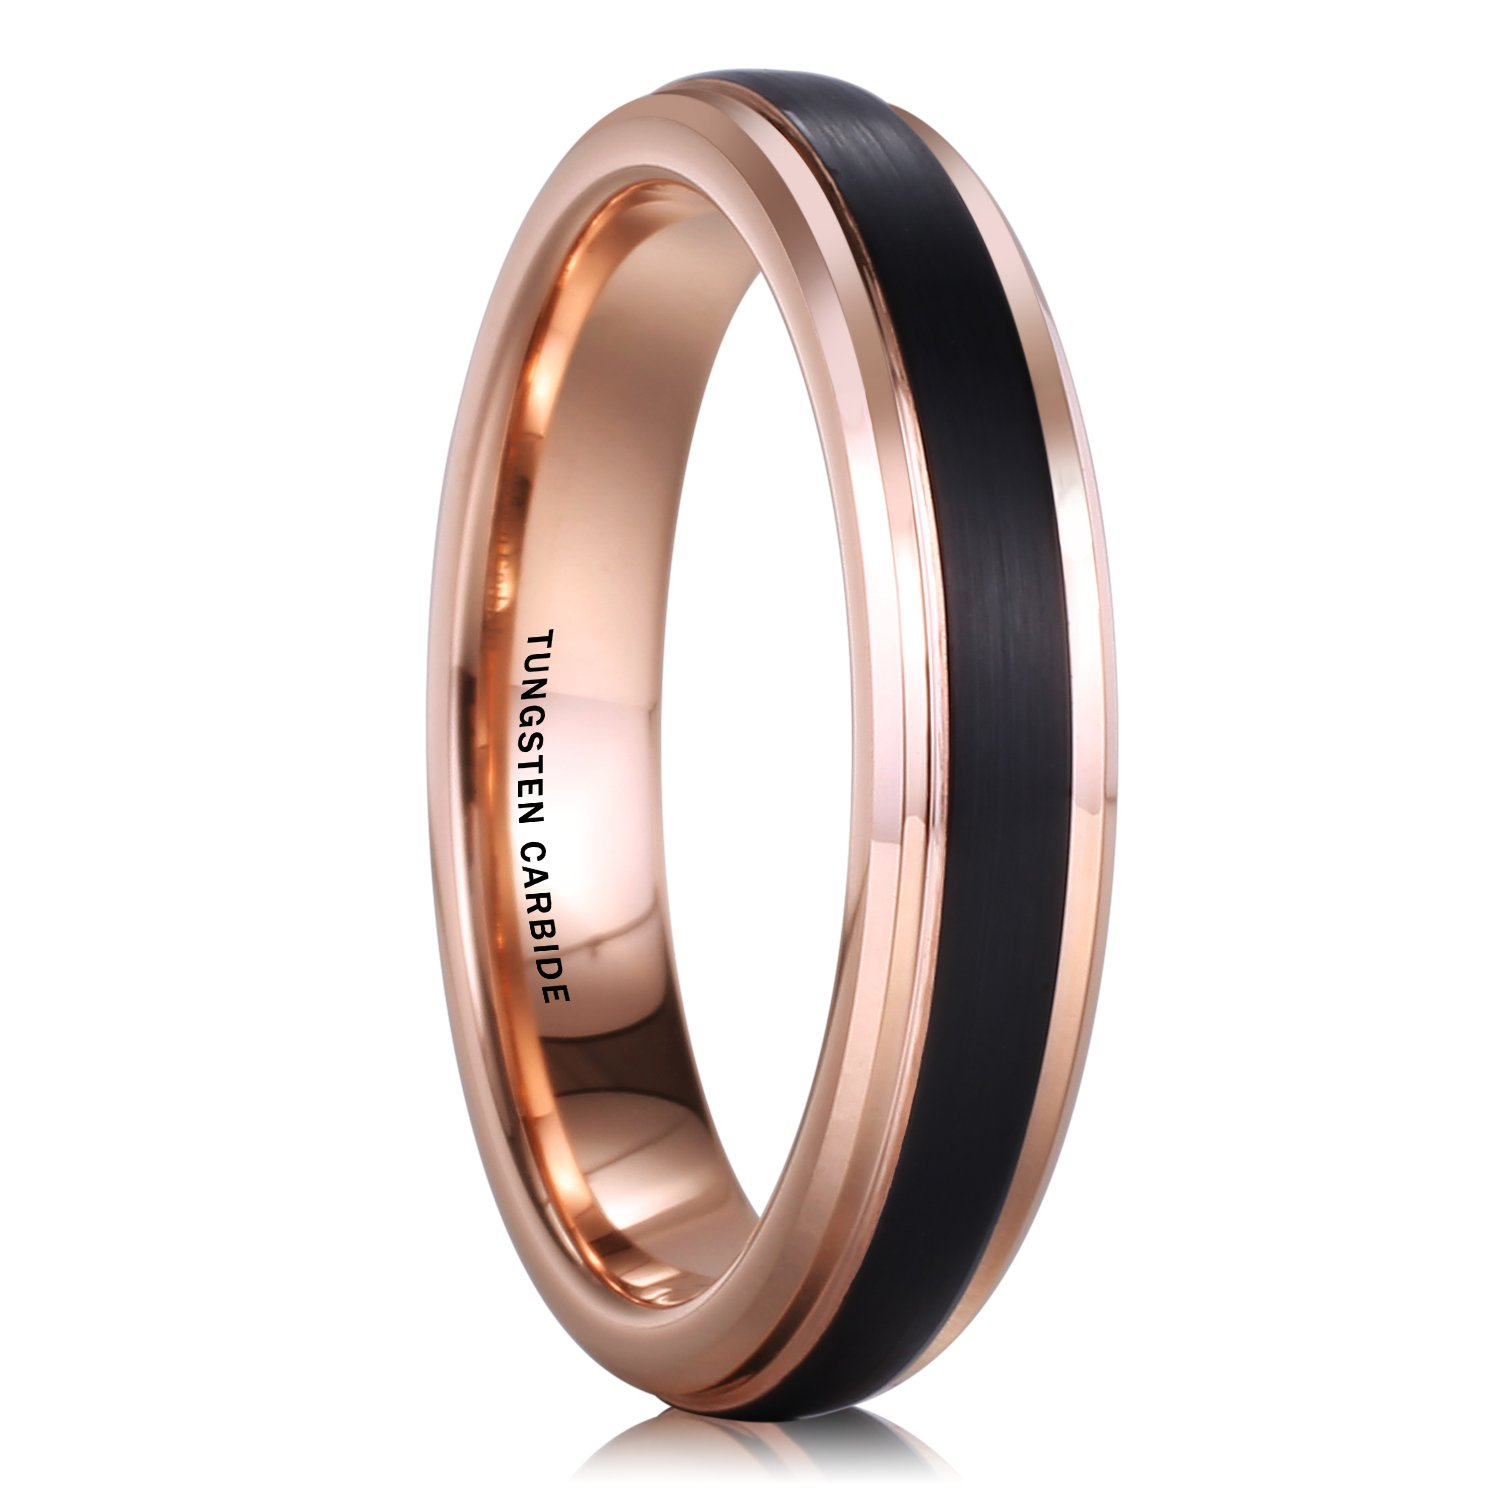 NaNa Chic Jewelry 4mm Tungsten Carbide Ring for Women Black Rose Gold Plated Wedding Band(4)